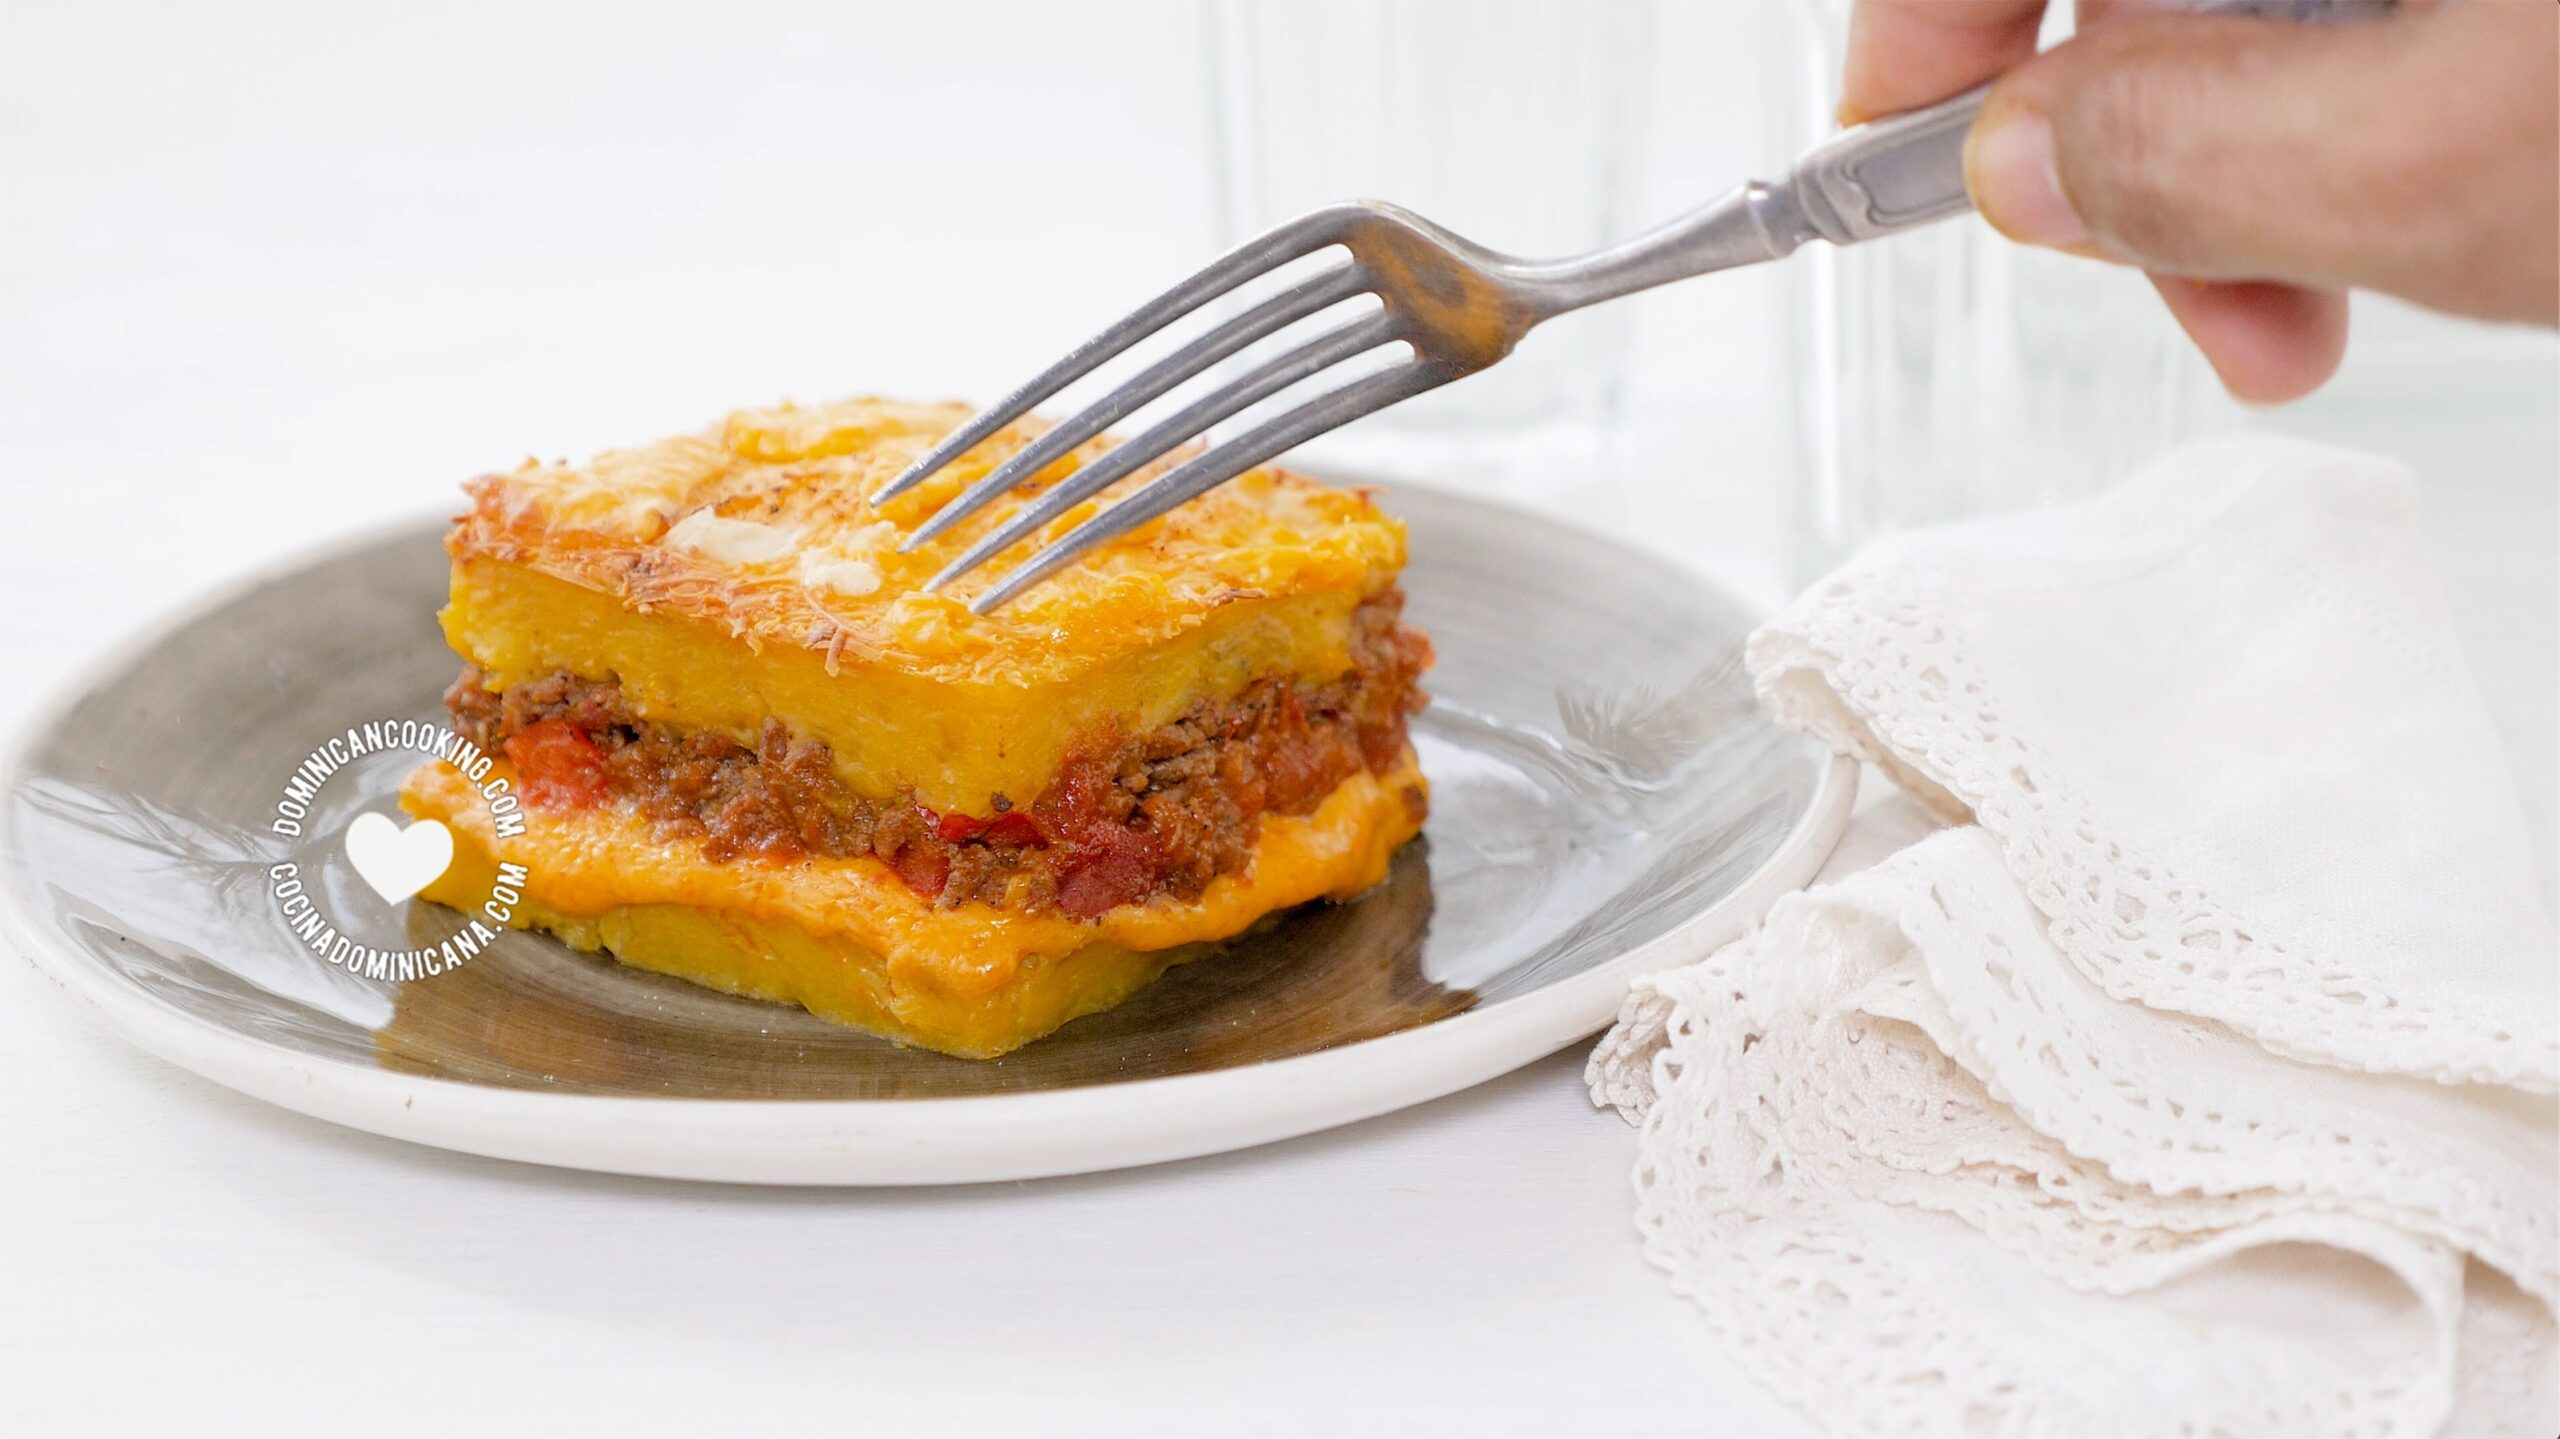 Serving pastelon